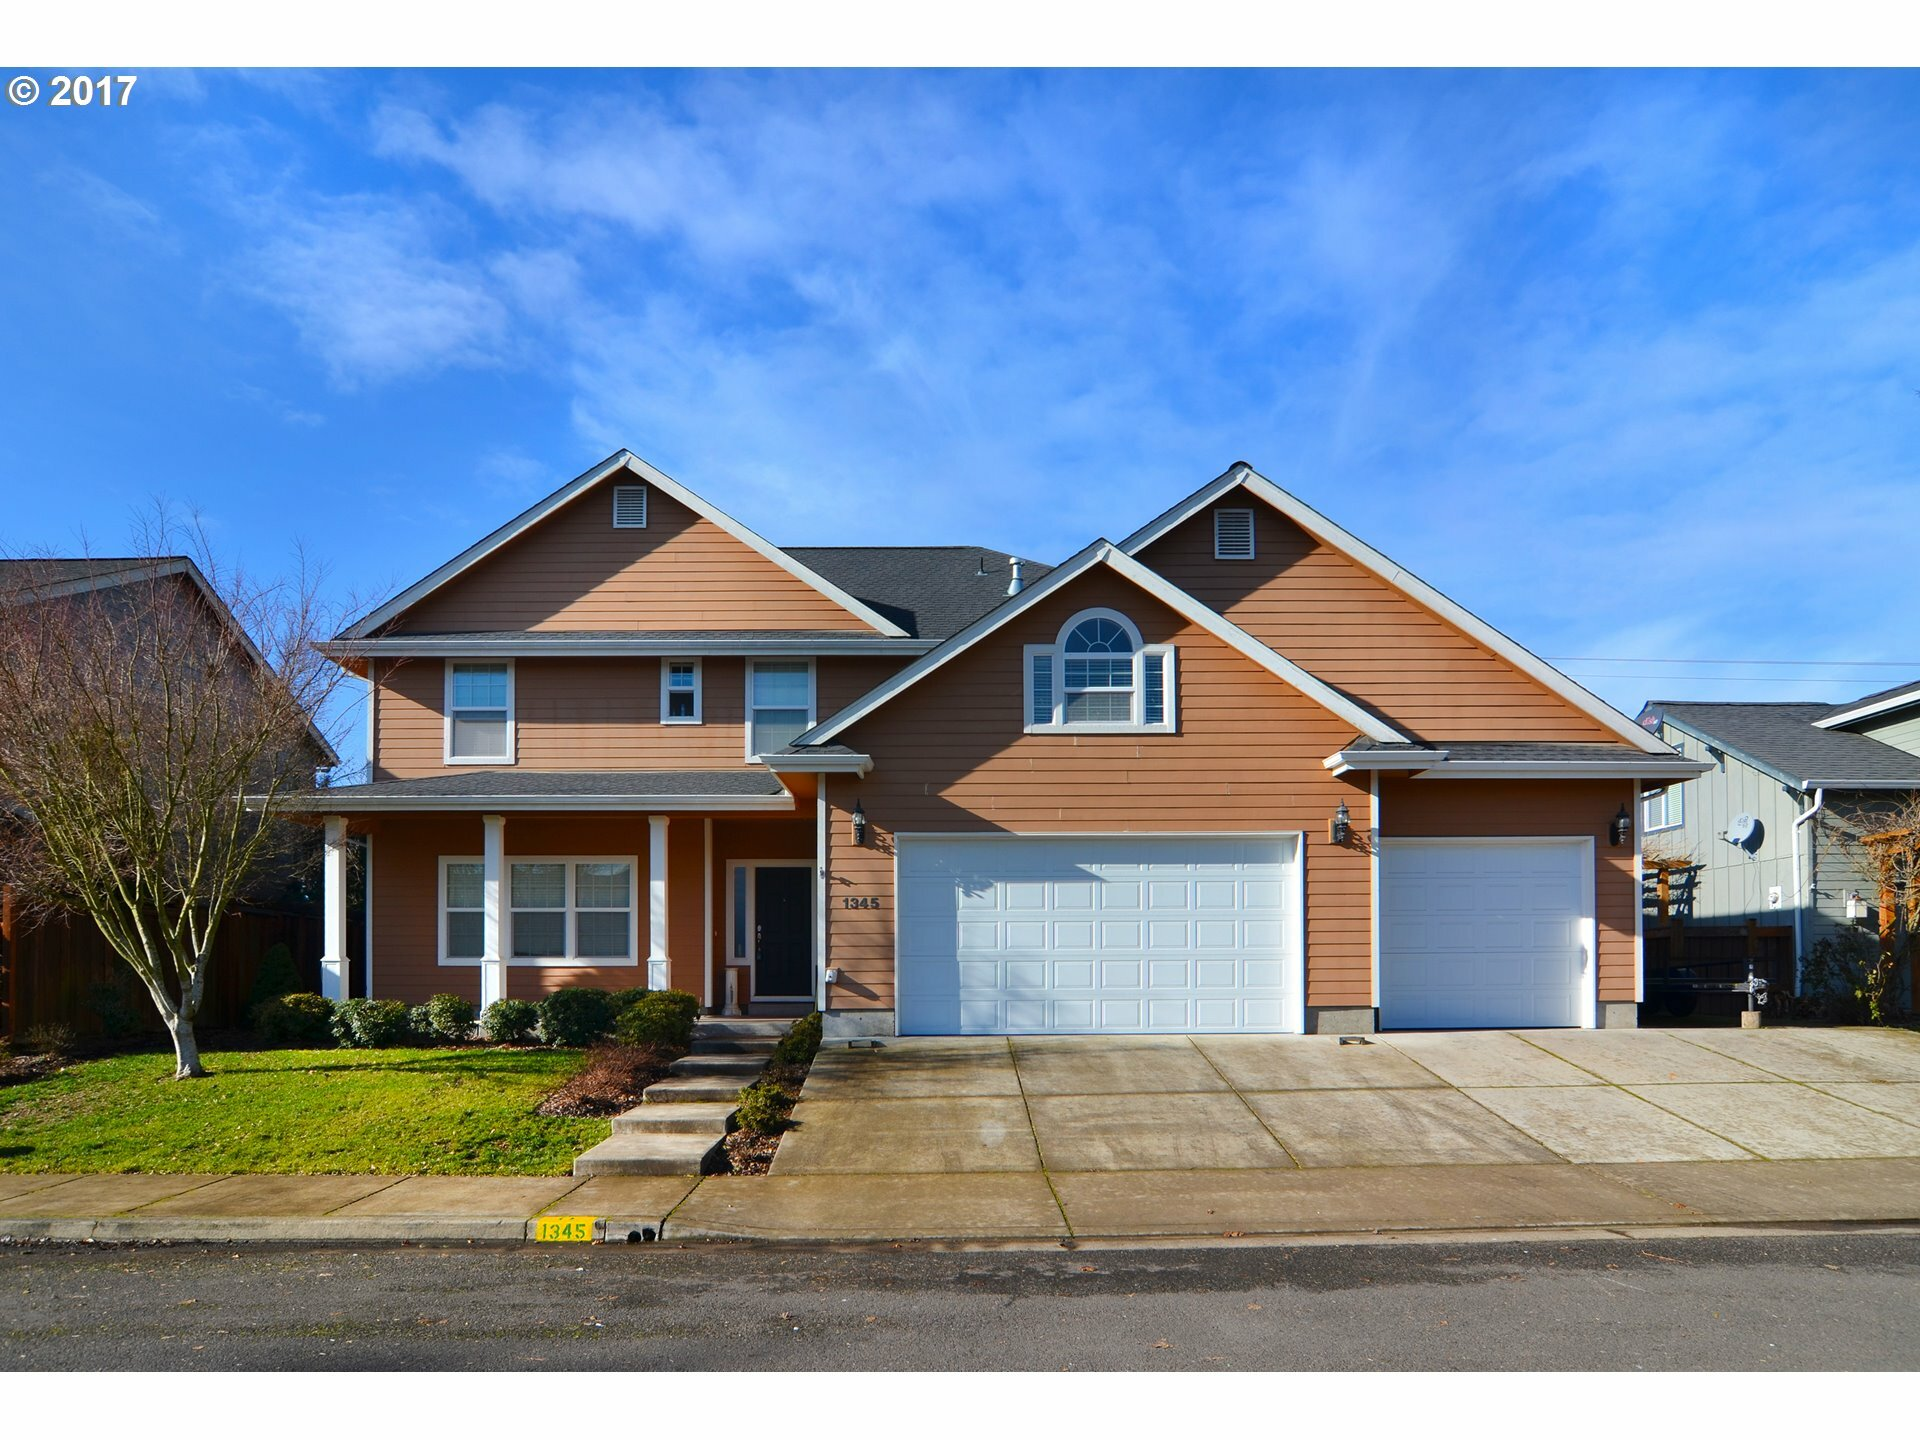 1345 Willow St, Junction City, OR - USA (photo 1)